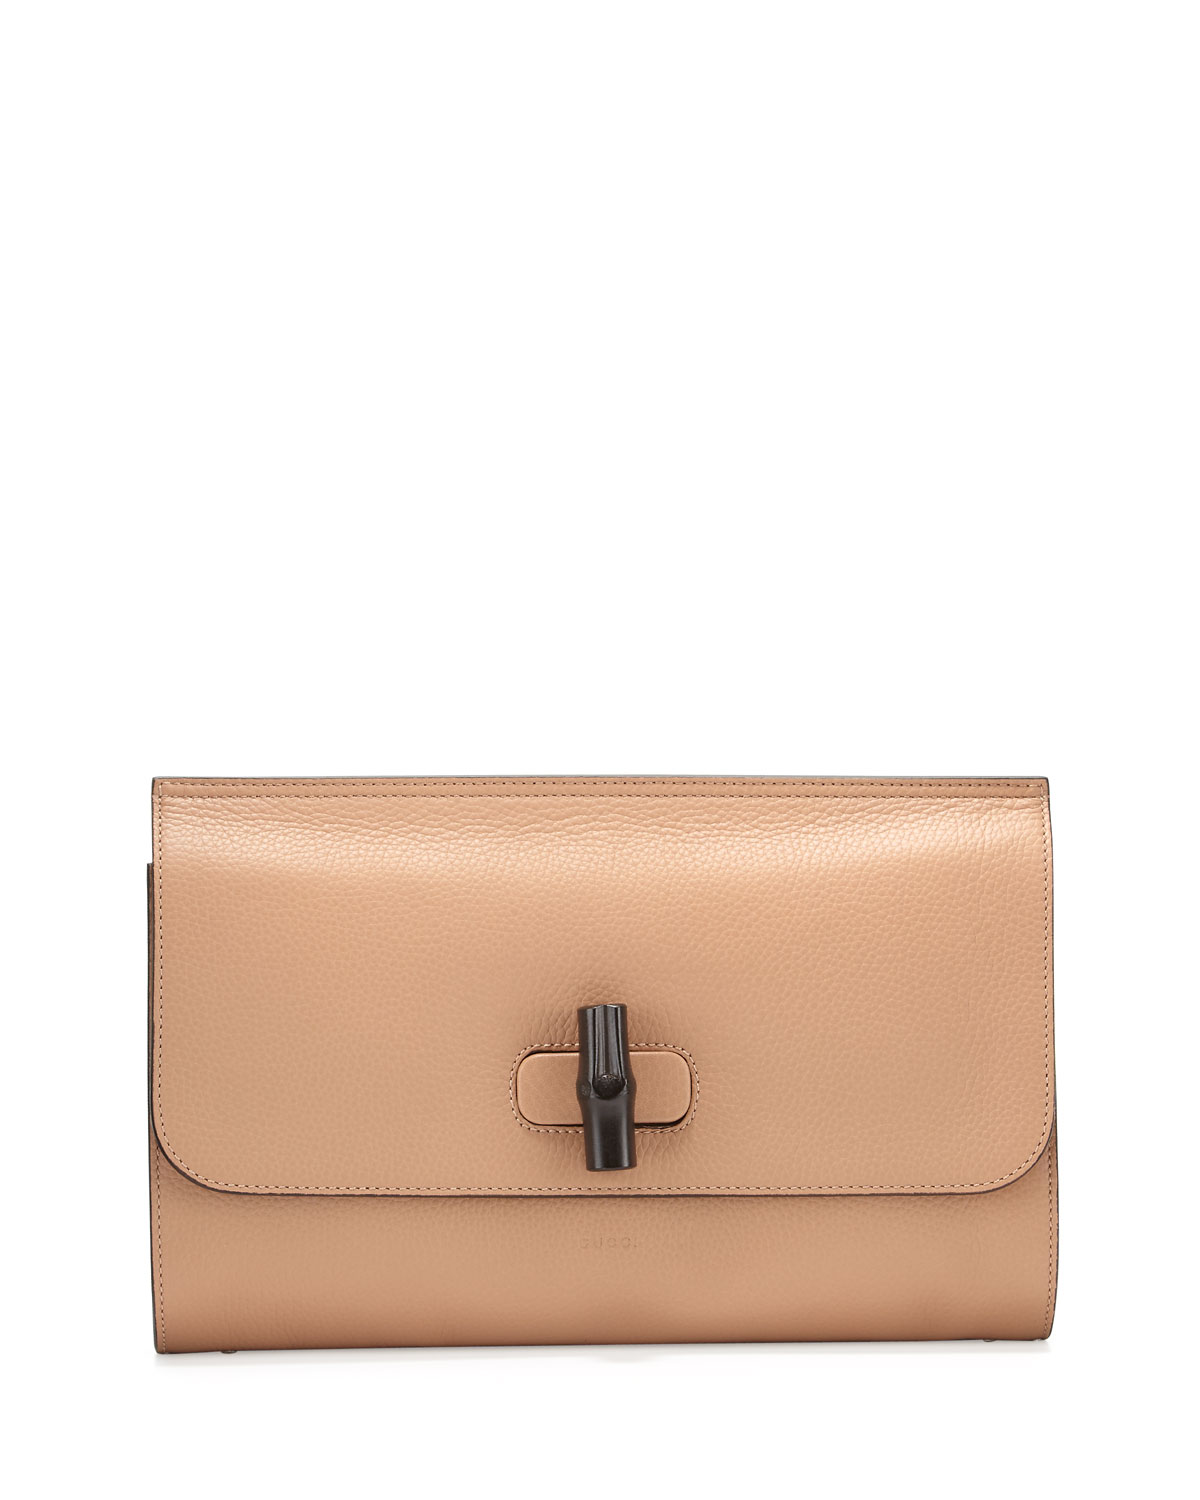 8c29b99d2028 Gucci Bamboo Daily Leather Clutch Bag, Camel | Neiman Marcus